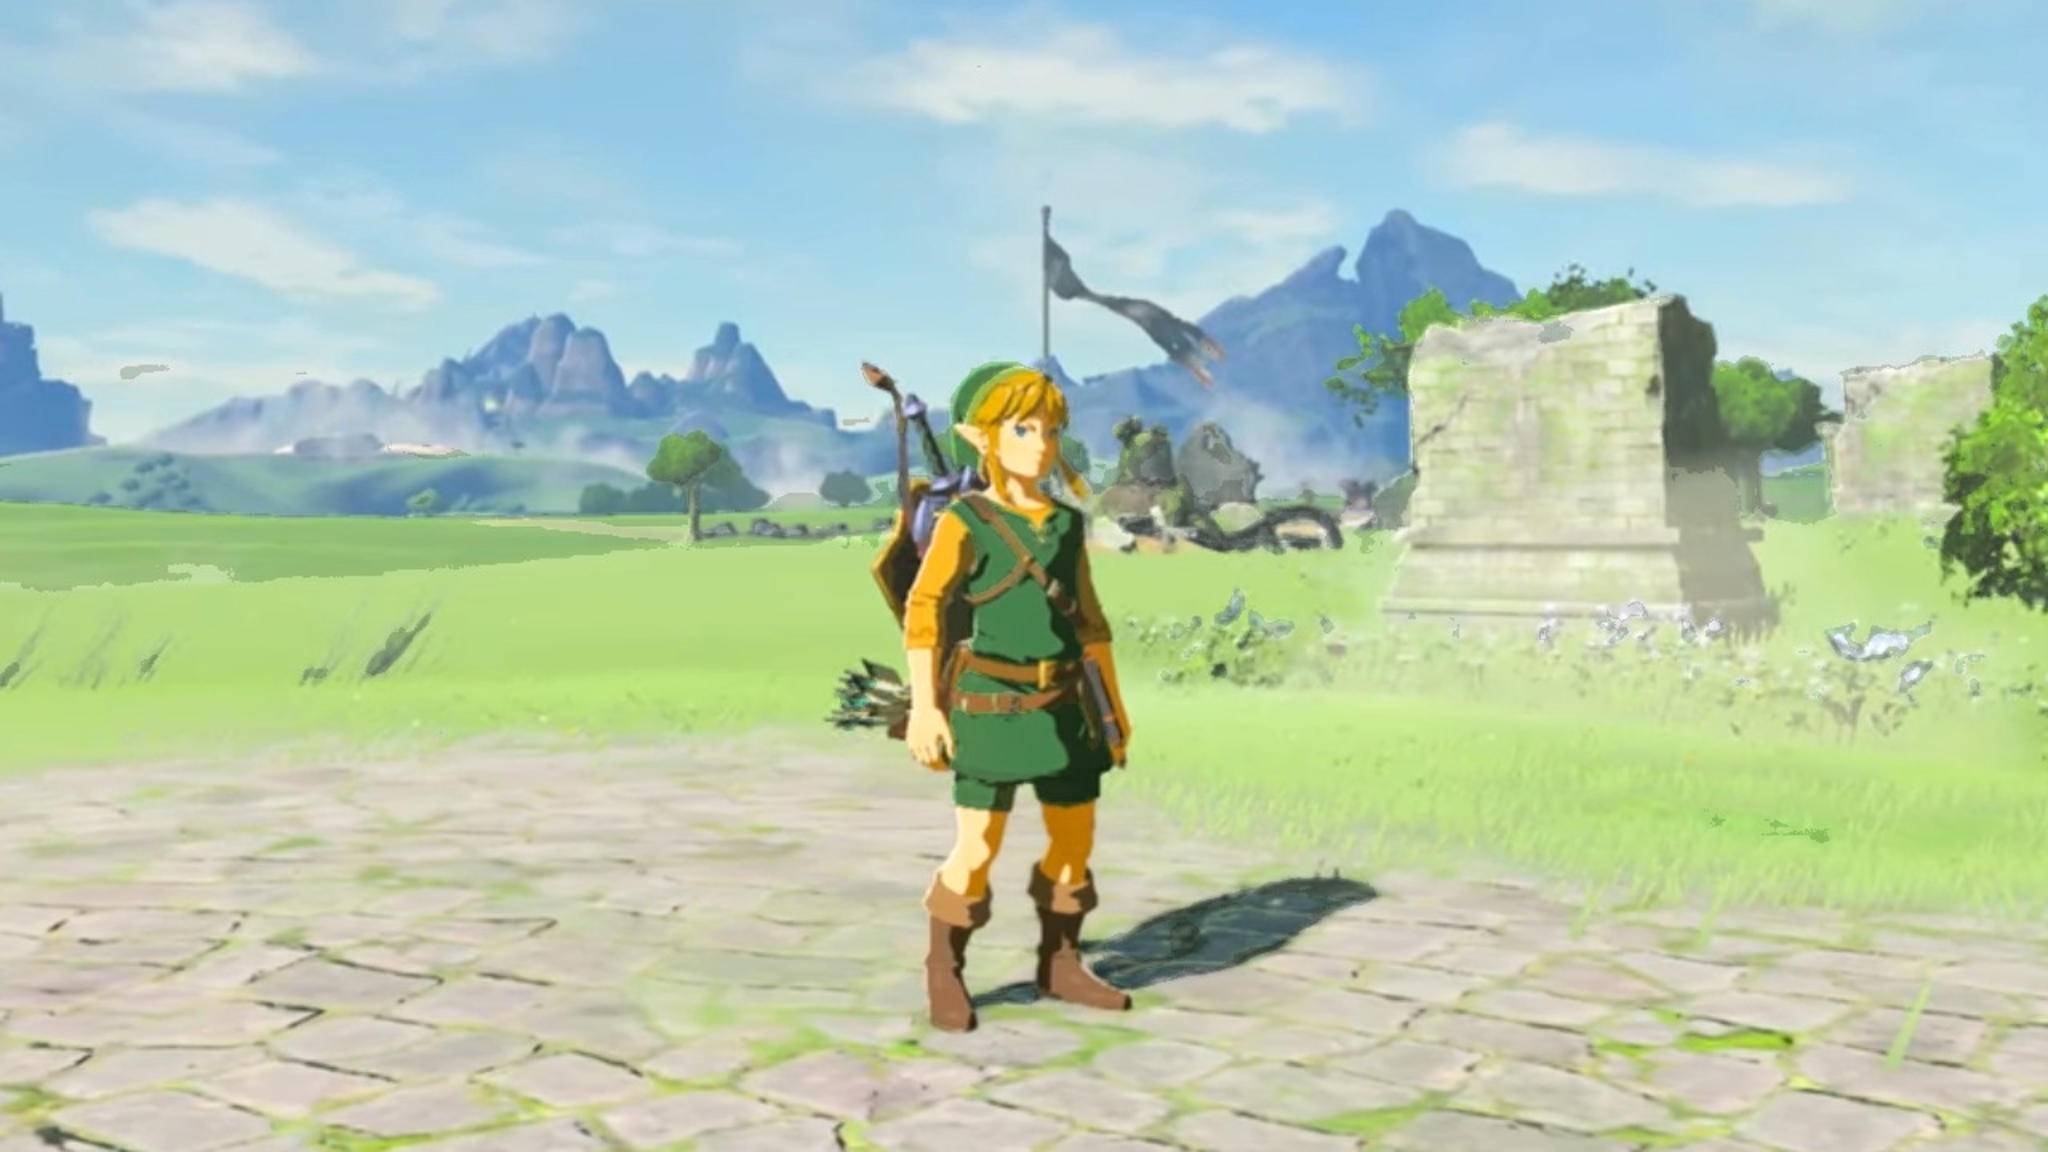 Legend Of Zelda Breath Of The Wild Königliche Küche Quotlegend Of Zelda Breath Of The Wild Quot Hol Dir Das Grüne